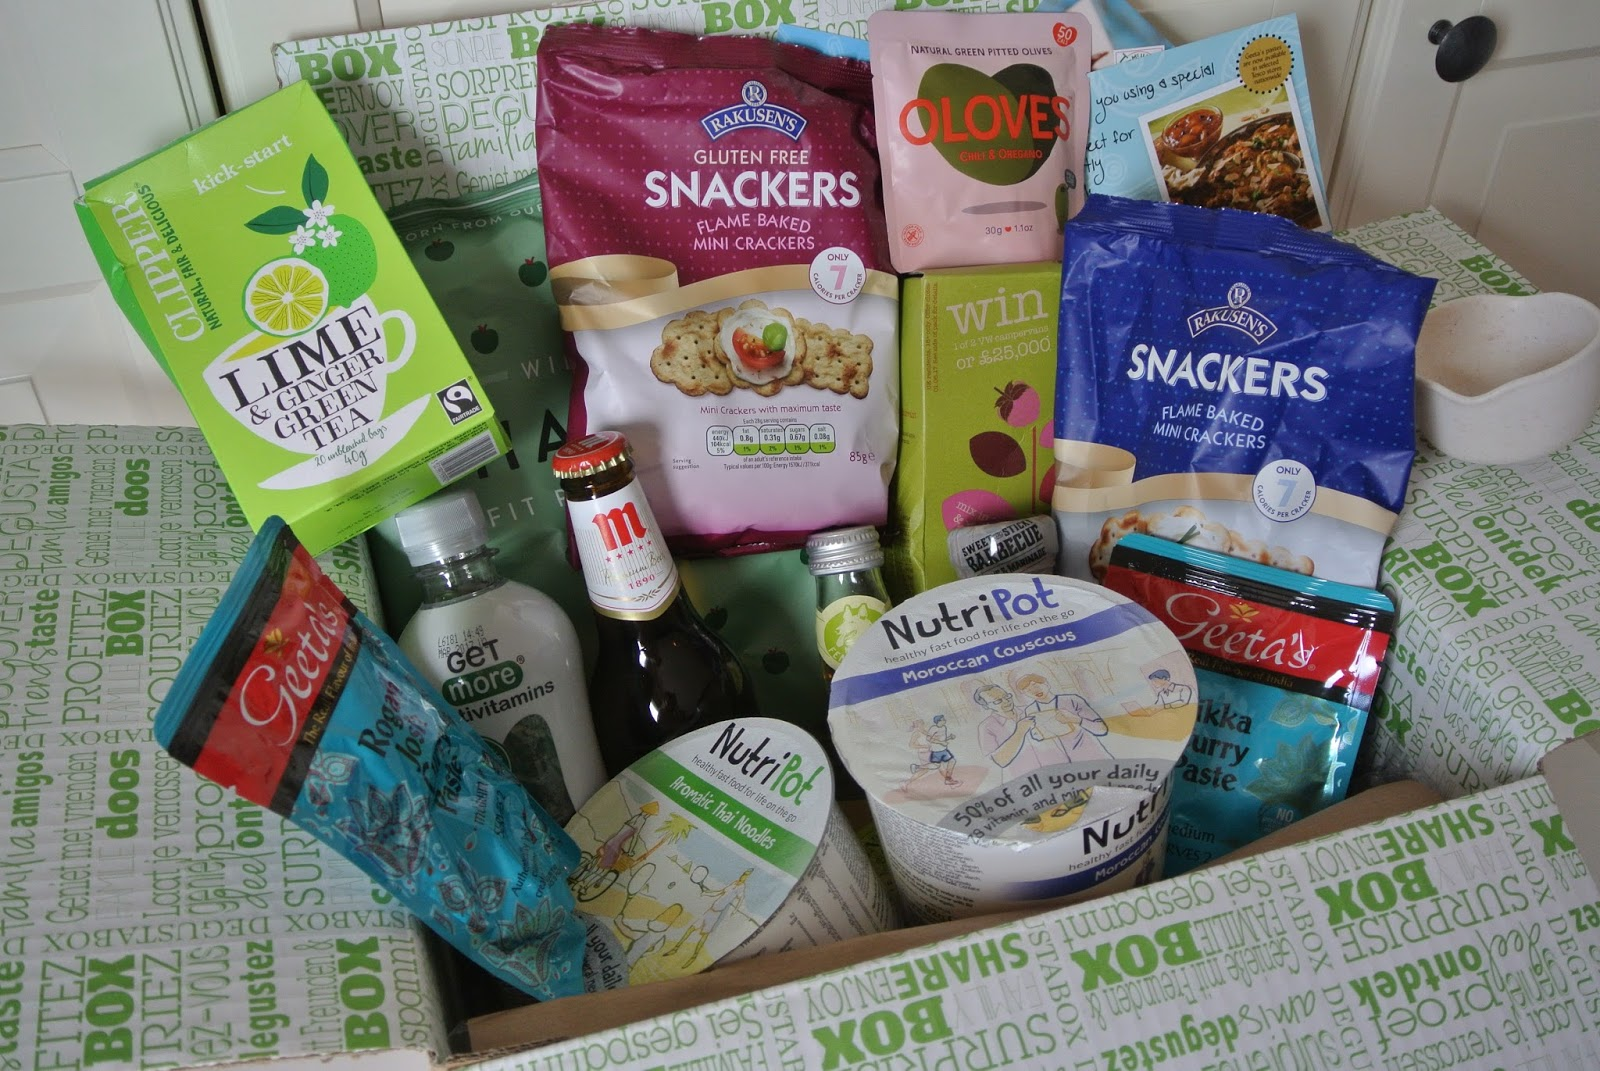 August Degustabox Food Subscription Box Image